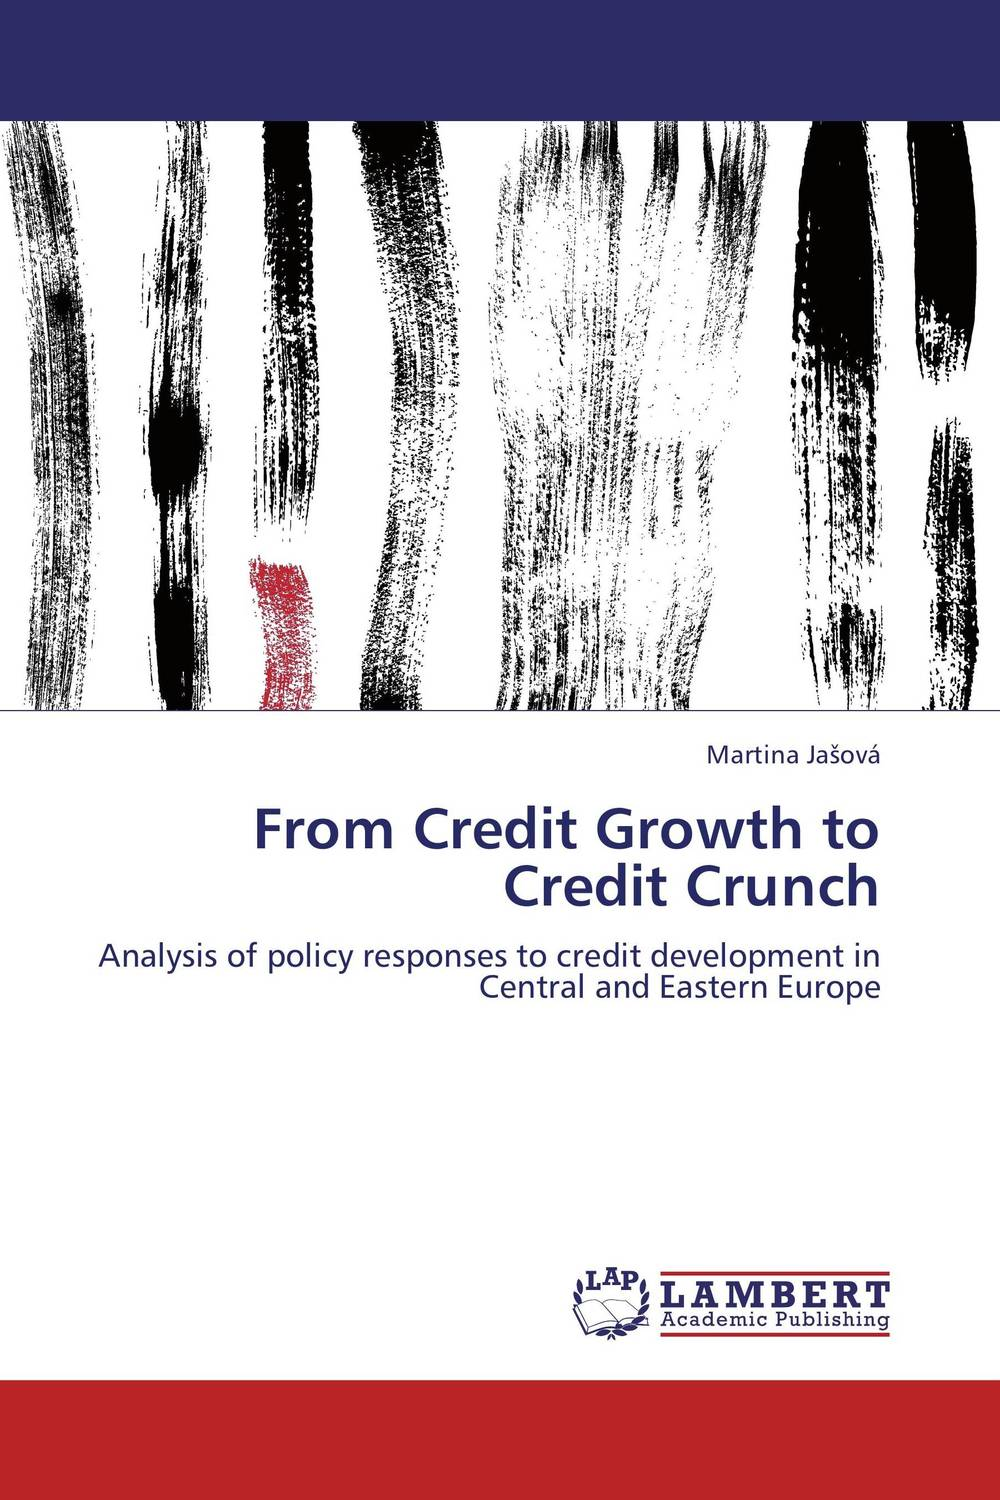 From Credit Growth to Credit Crunch the credibility of credit ratings